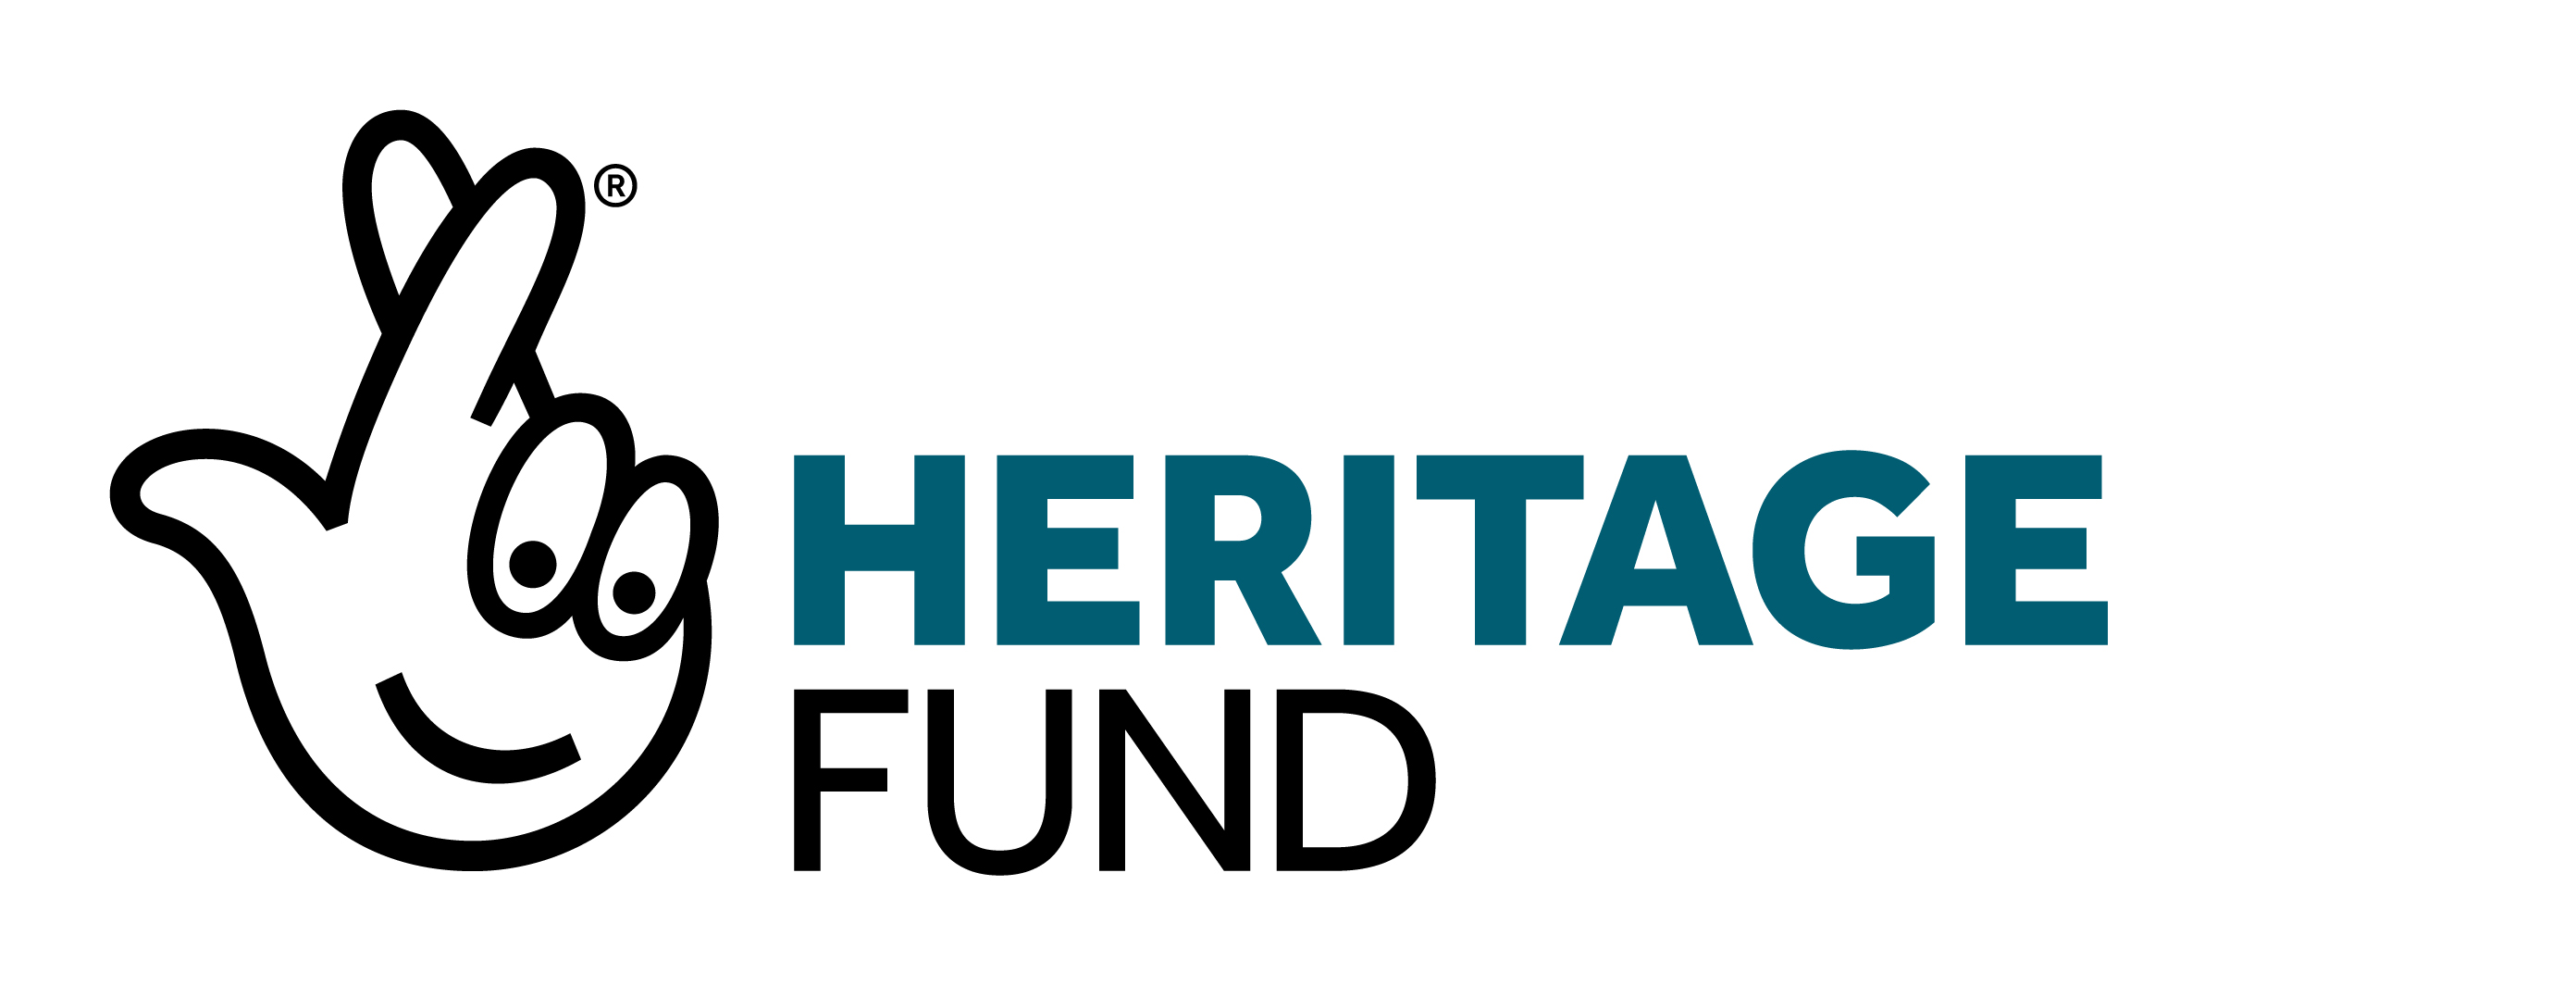 The Lottery Heritage Fund Logo